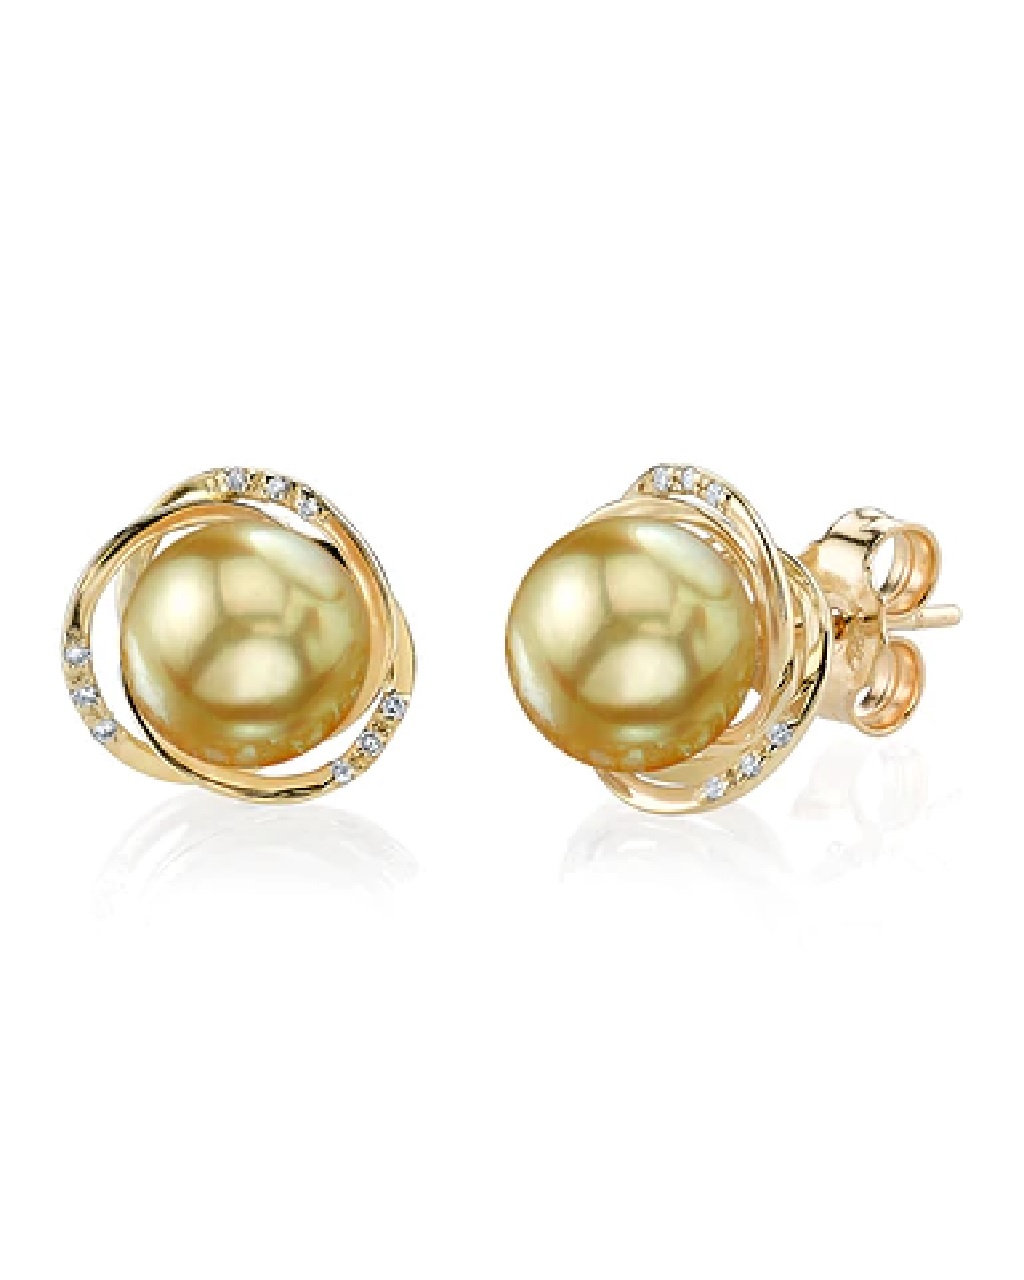 Exquisite earrings feature two 8.0-9.0mm  Gold South Sea pearls, selected for their luminous luster